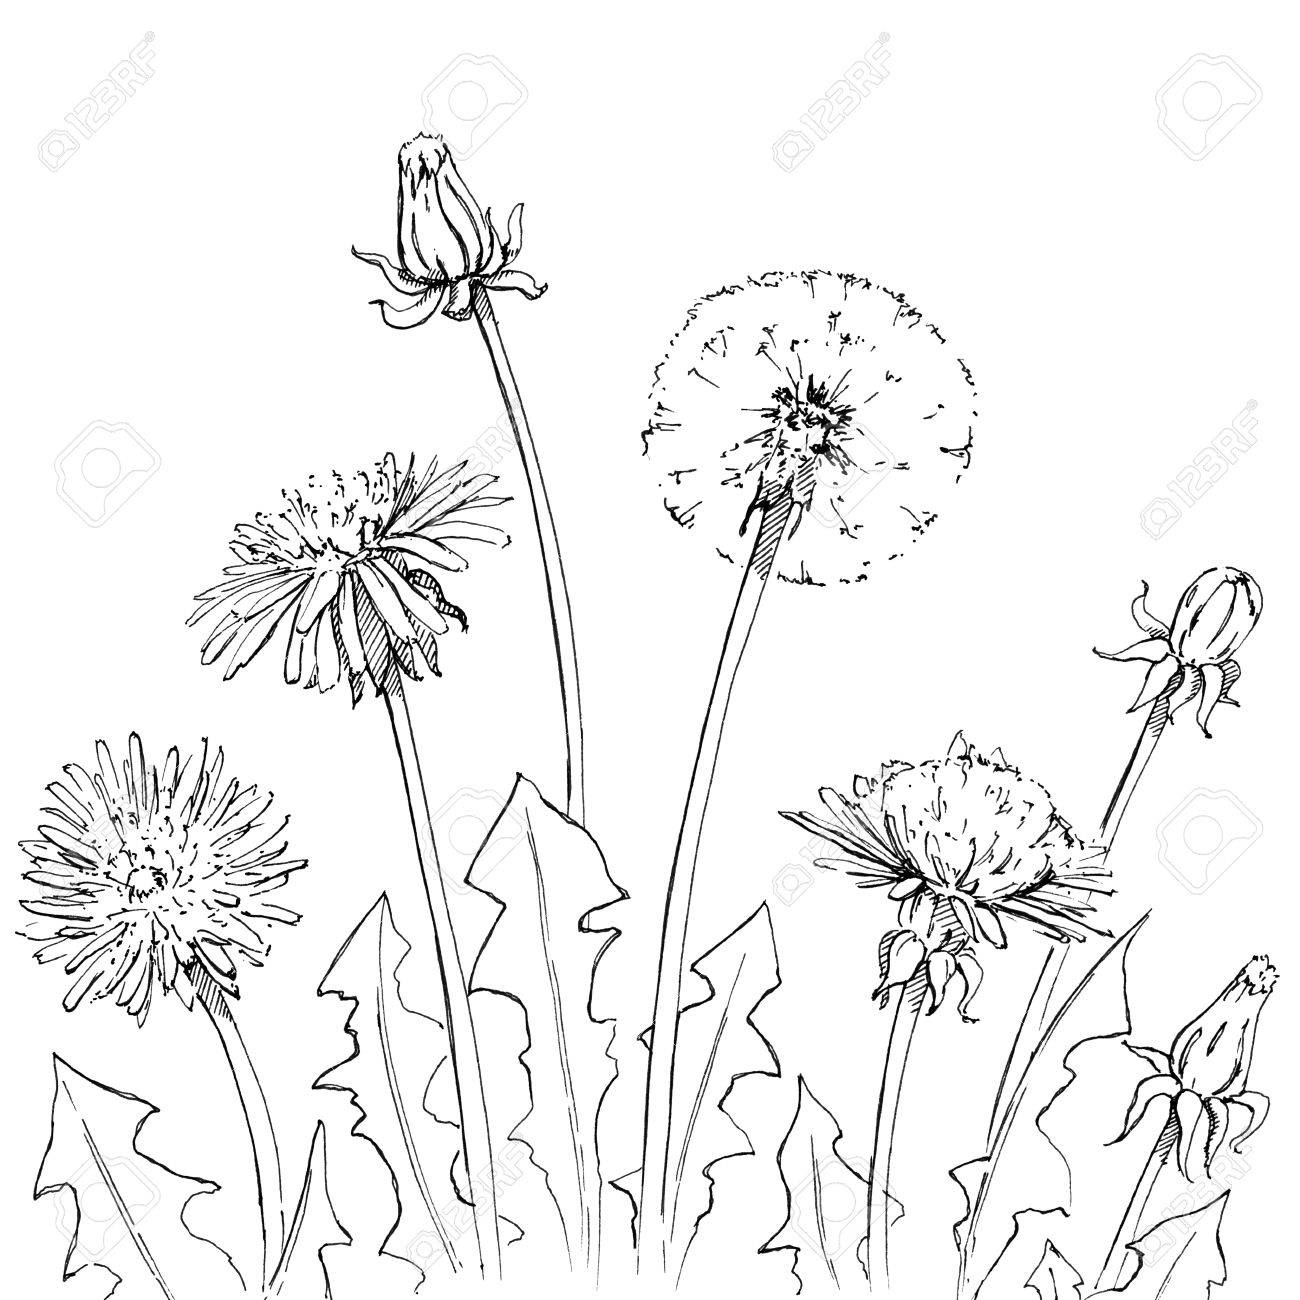 1300x1300 Hand Drawn Graphic Flowers Dandelion On White Background Stock